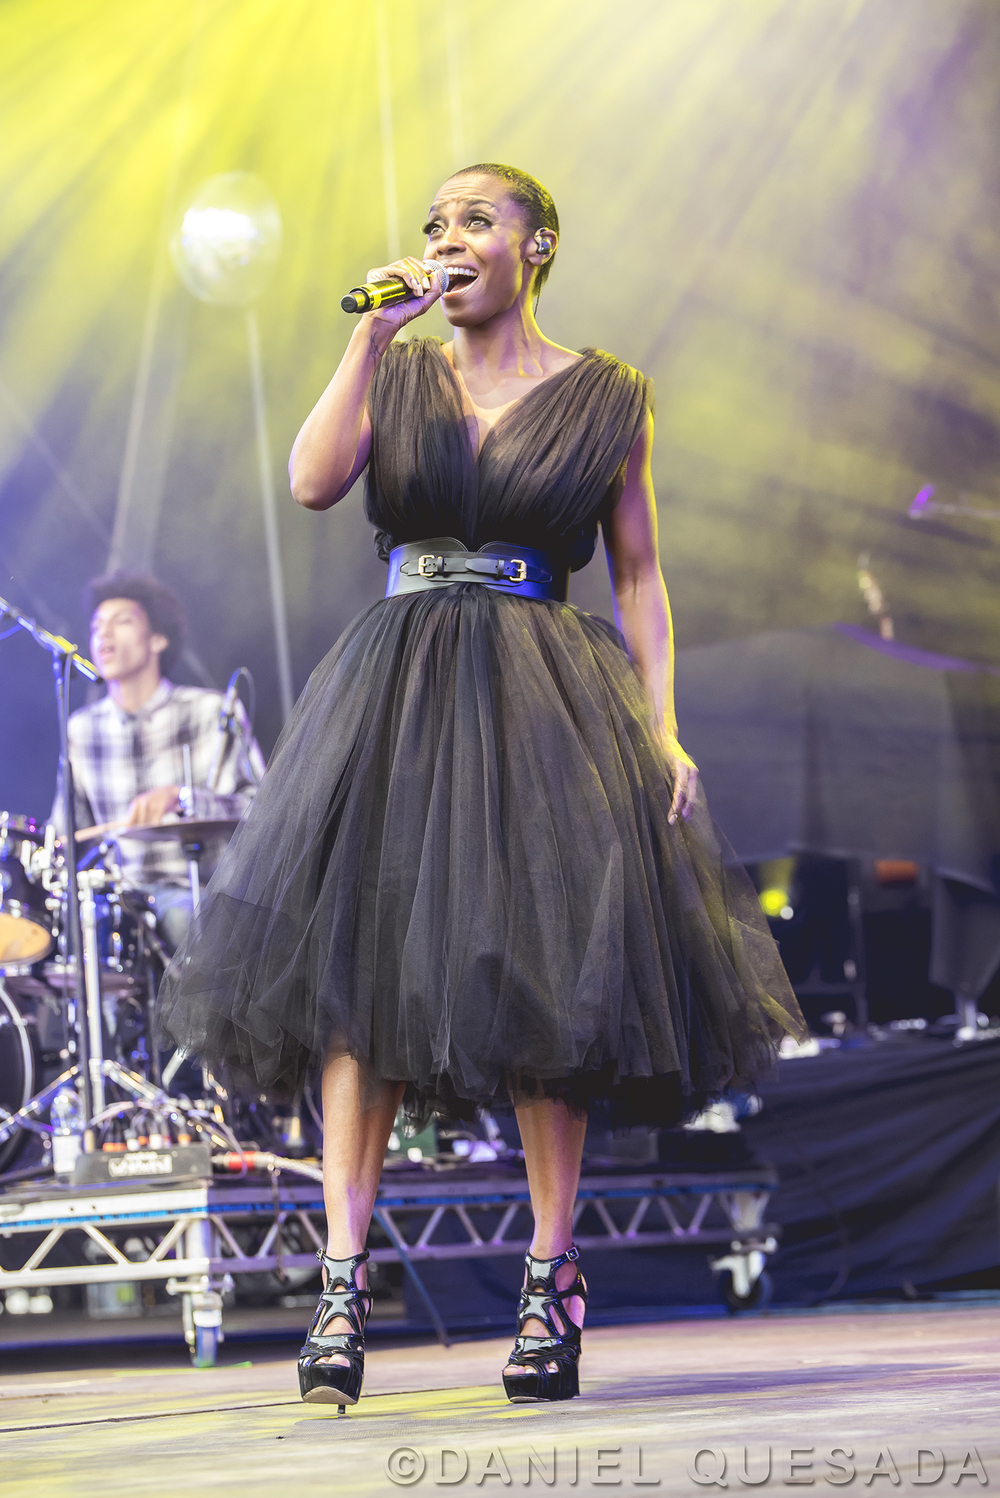 morcheeba_23 copy.jpg